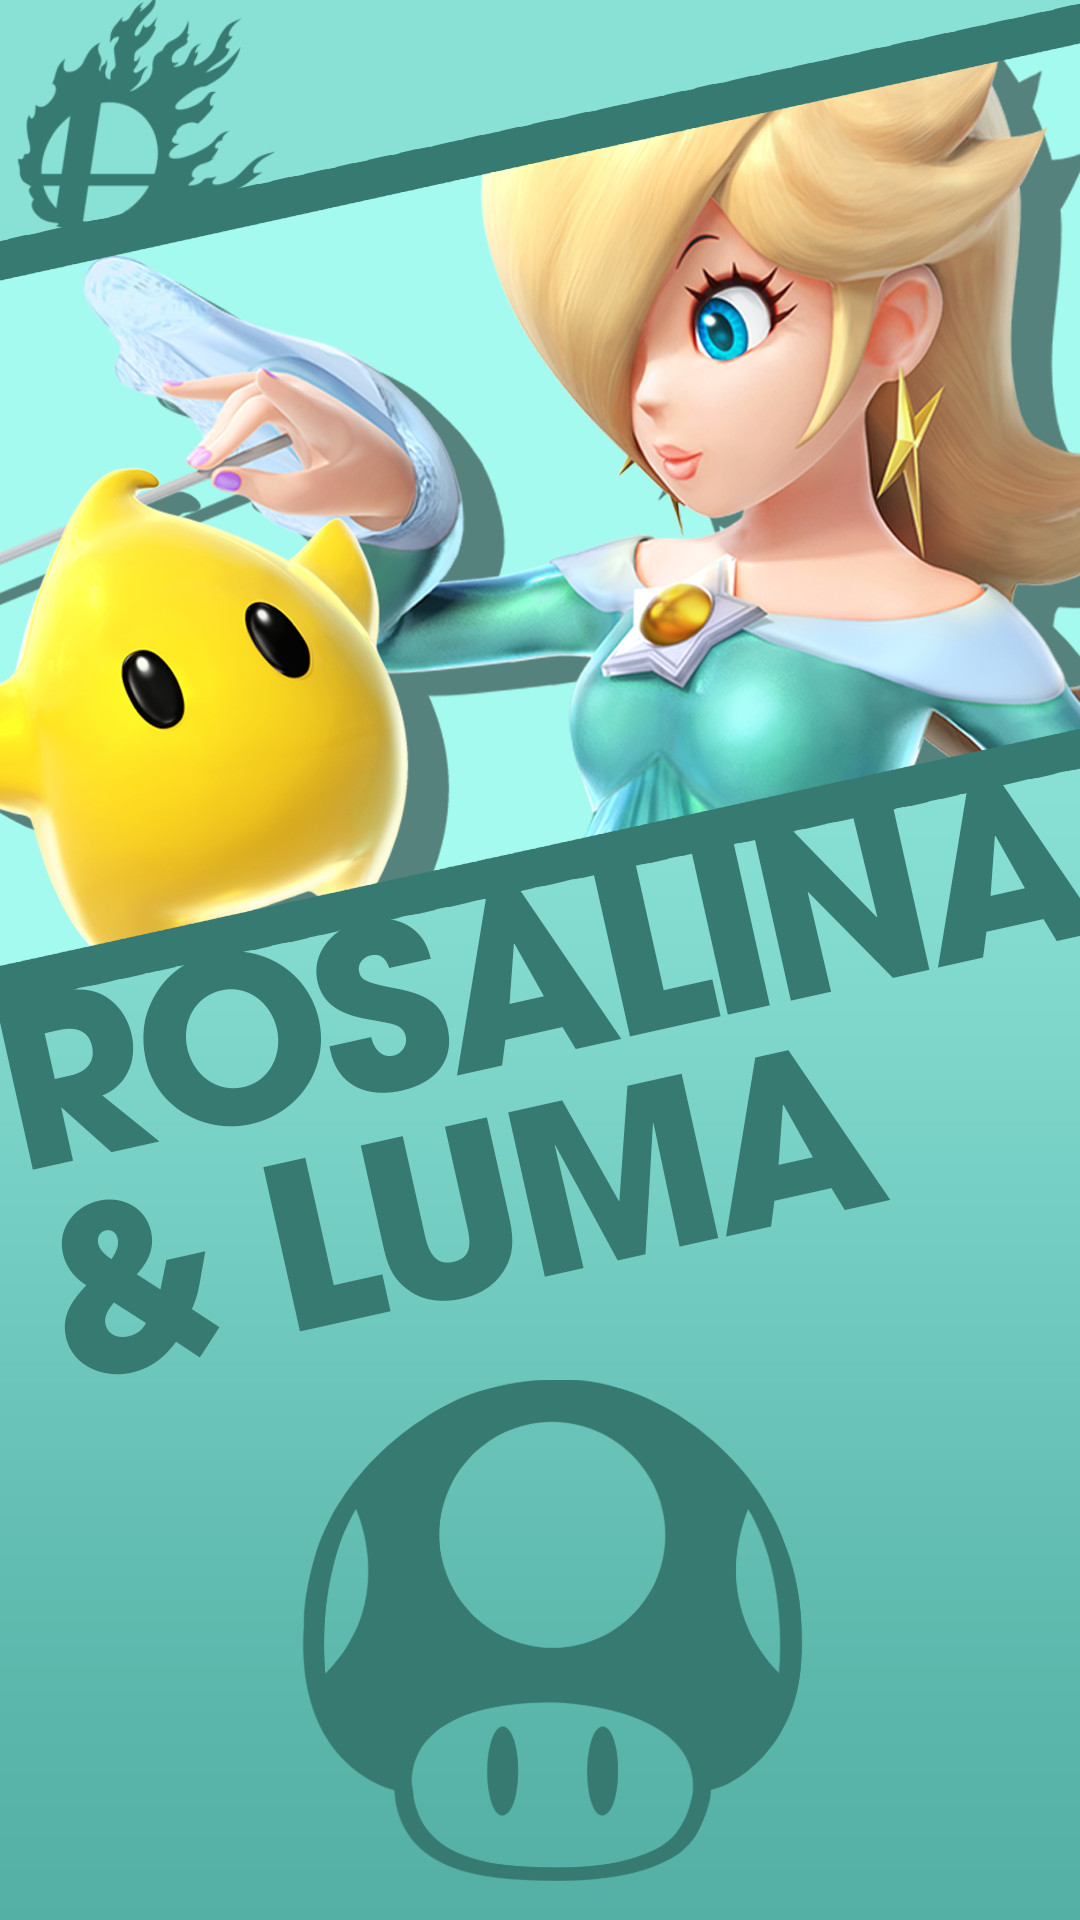 1080x1920 Phone Wallpaper by MrThatKidAlex24 Rosalina and Luma Smash Bros. Phone  Wallpaper by MrThatKidAlex24